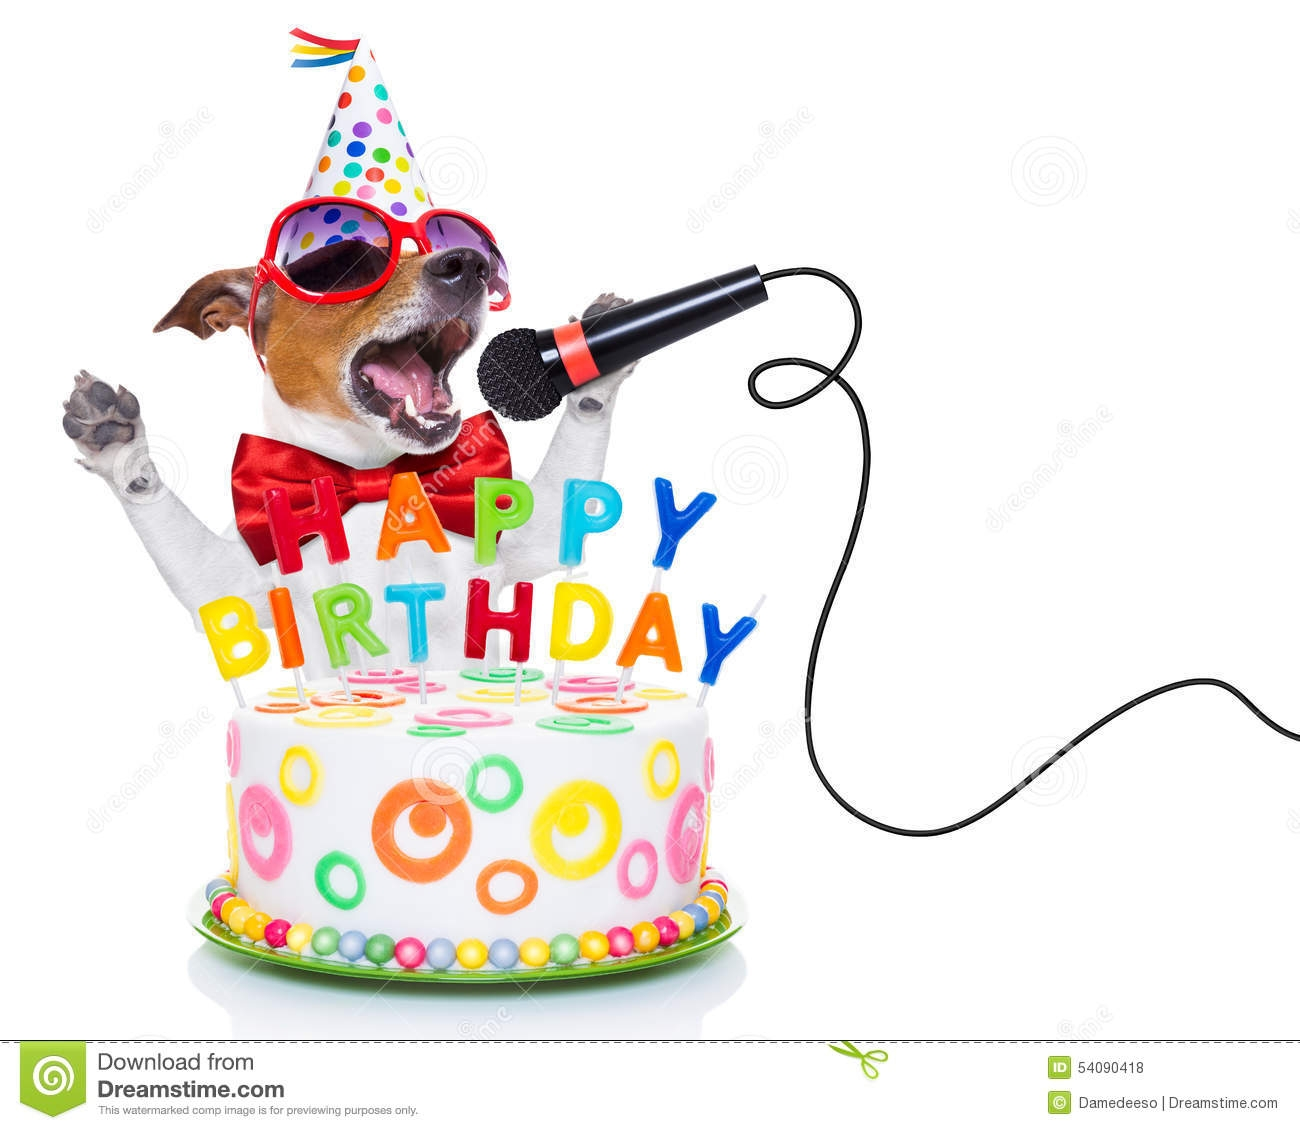 silly happy birthday clipart - Clipground